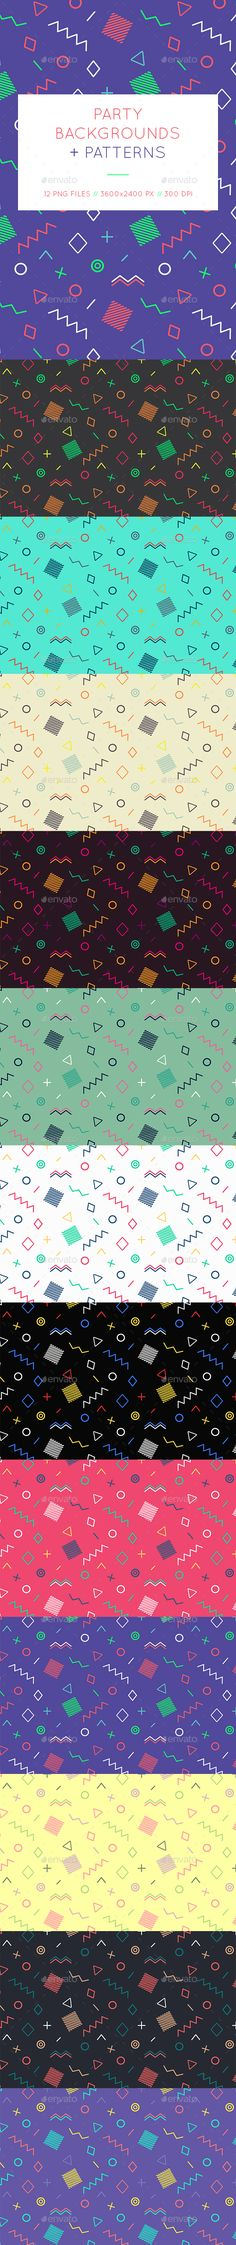 Party Geometric Backgrounds